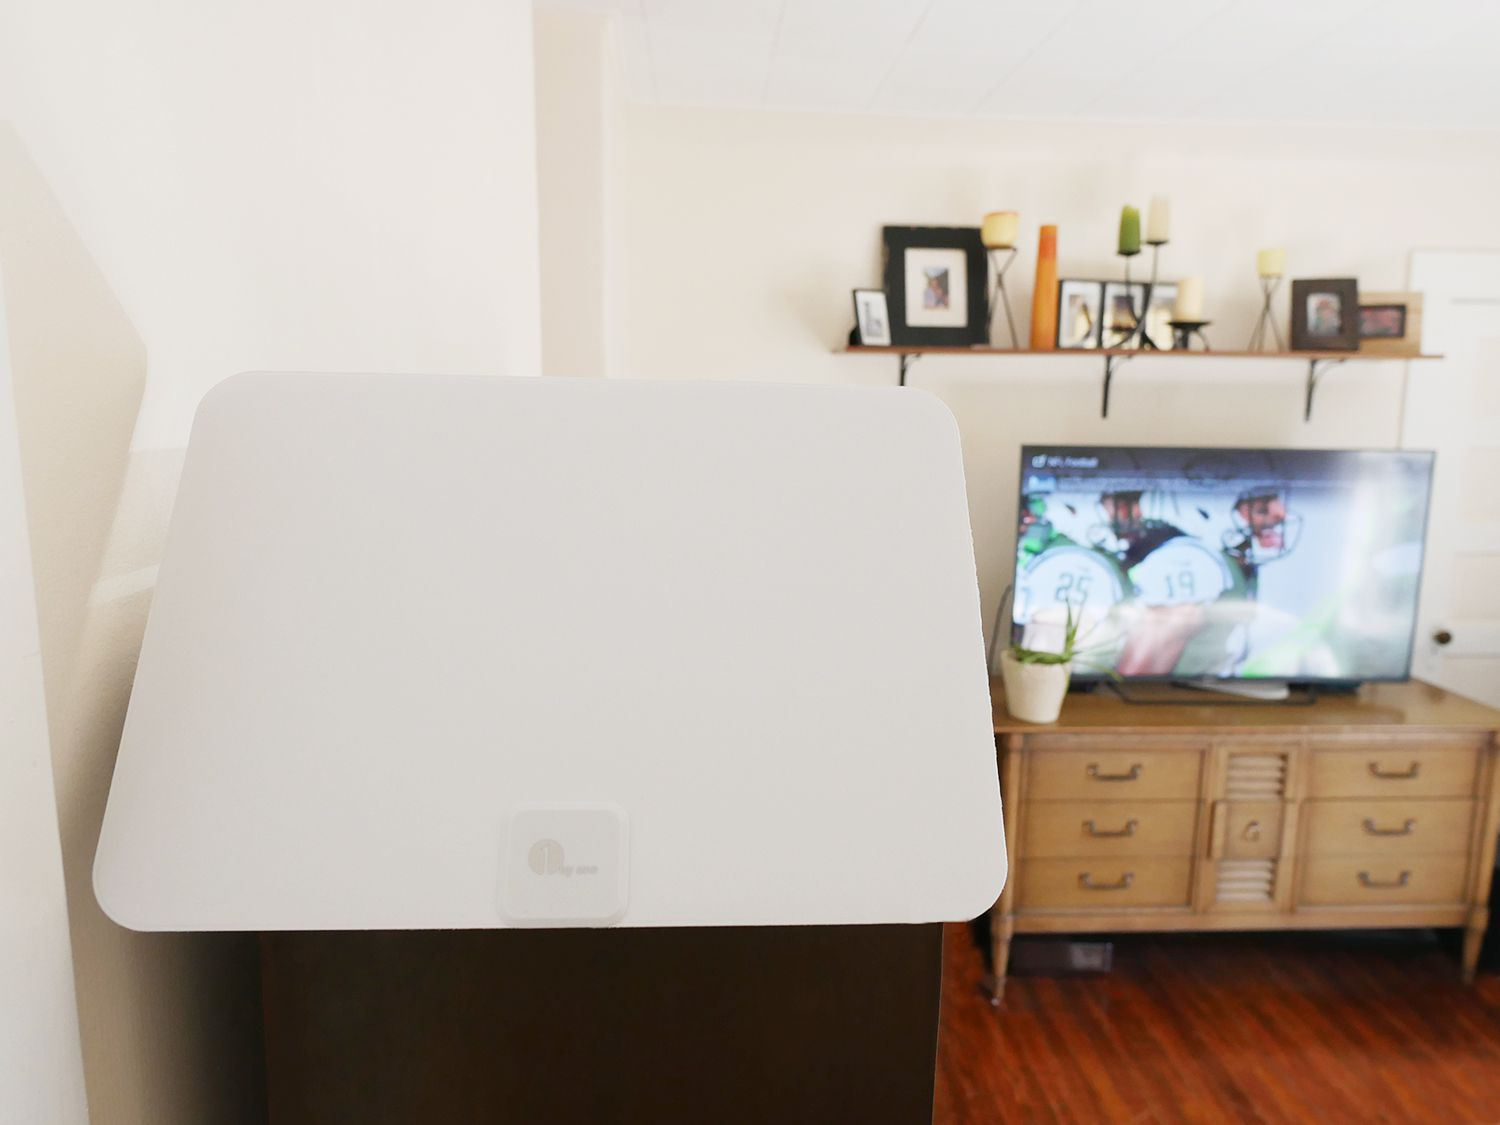 1byone 50-Mile Amplified HDTV Antenna